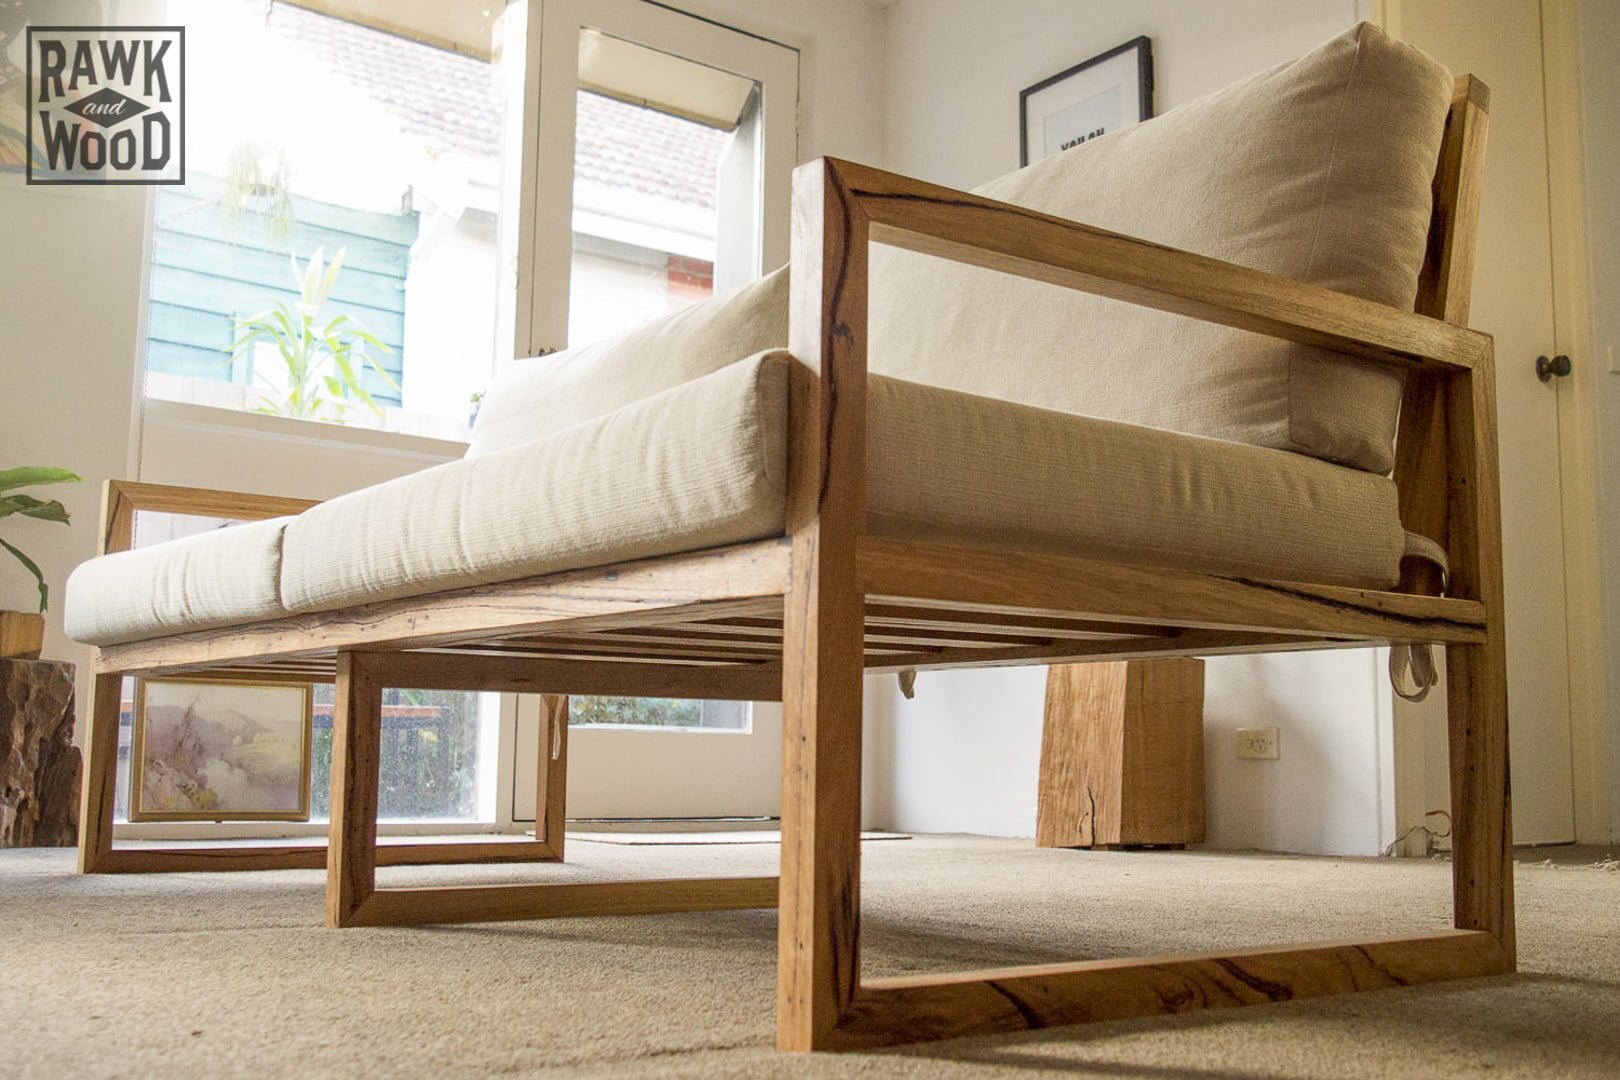 Recycled-Timber-Sofa, made in Melbourne by Rawk and Wood